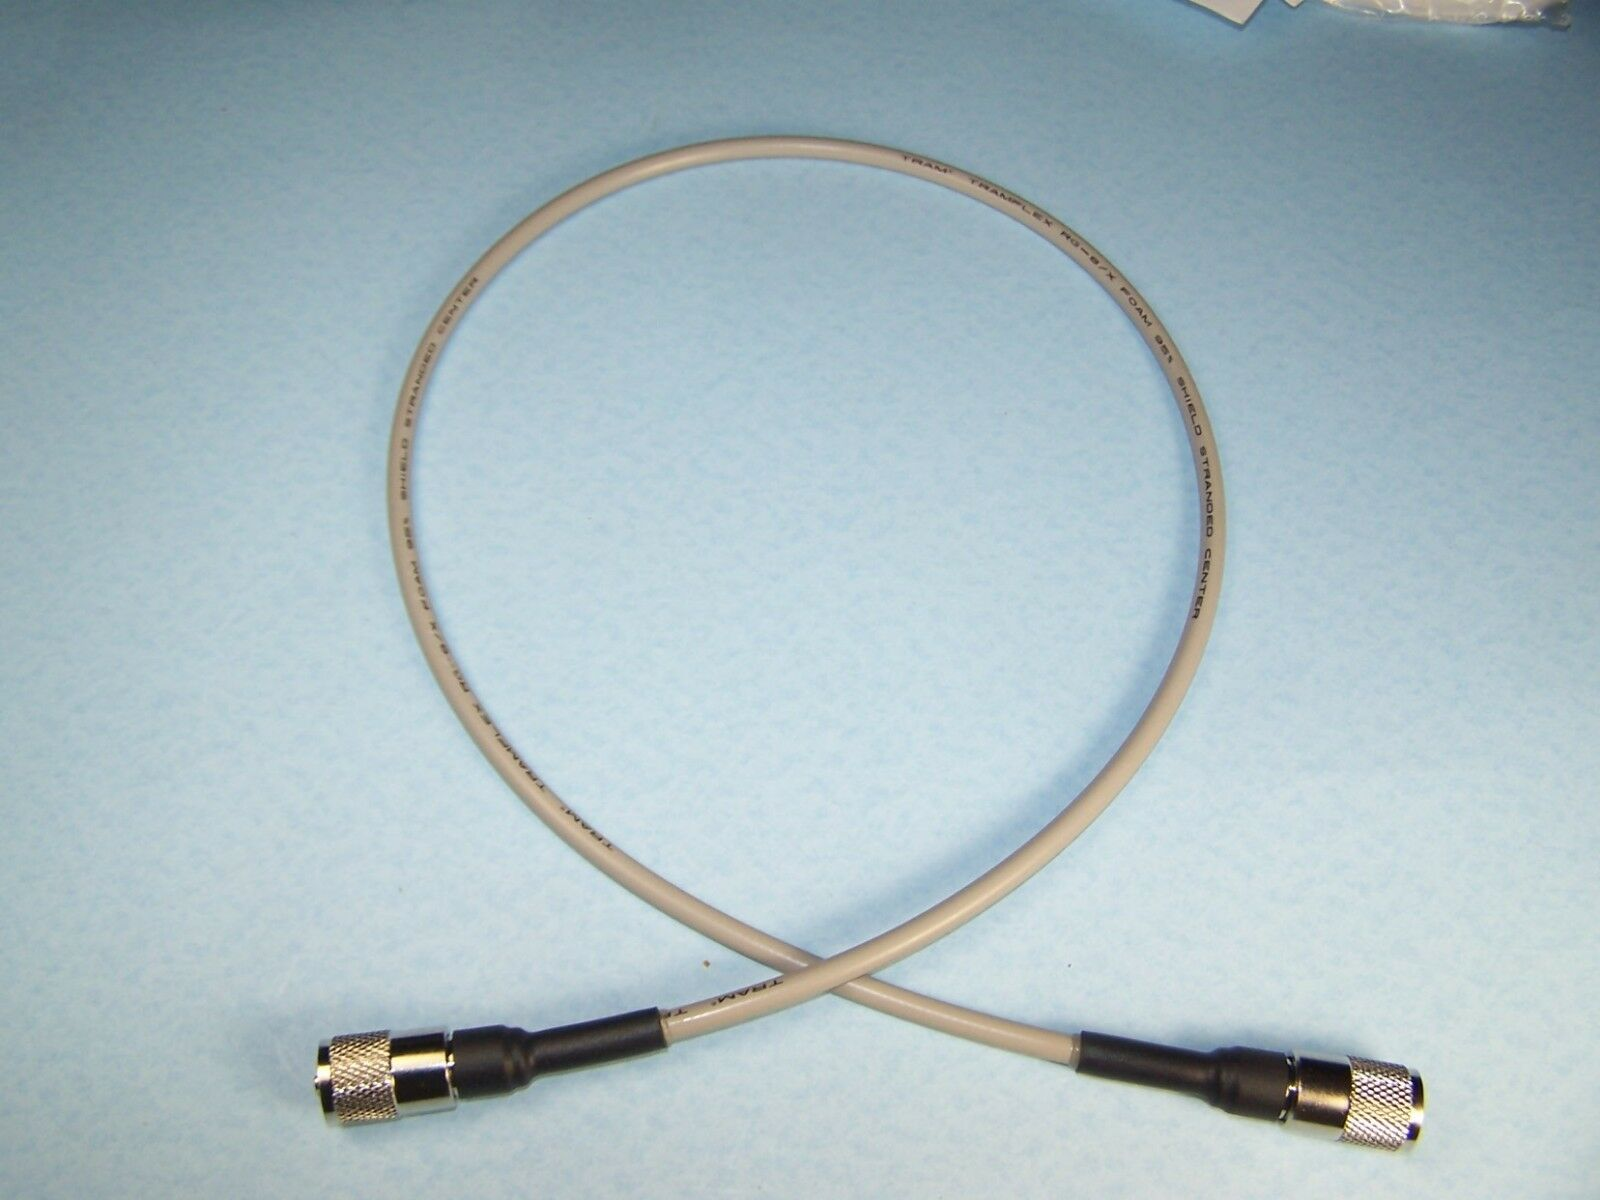 RG-8X-3 texxcomm 2 RG-8X COAX CABLE JUMPER 3 FT FOOT SEALED PL-259s USA MADE PROFESSIONAL CB HAM